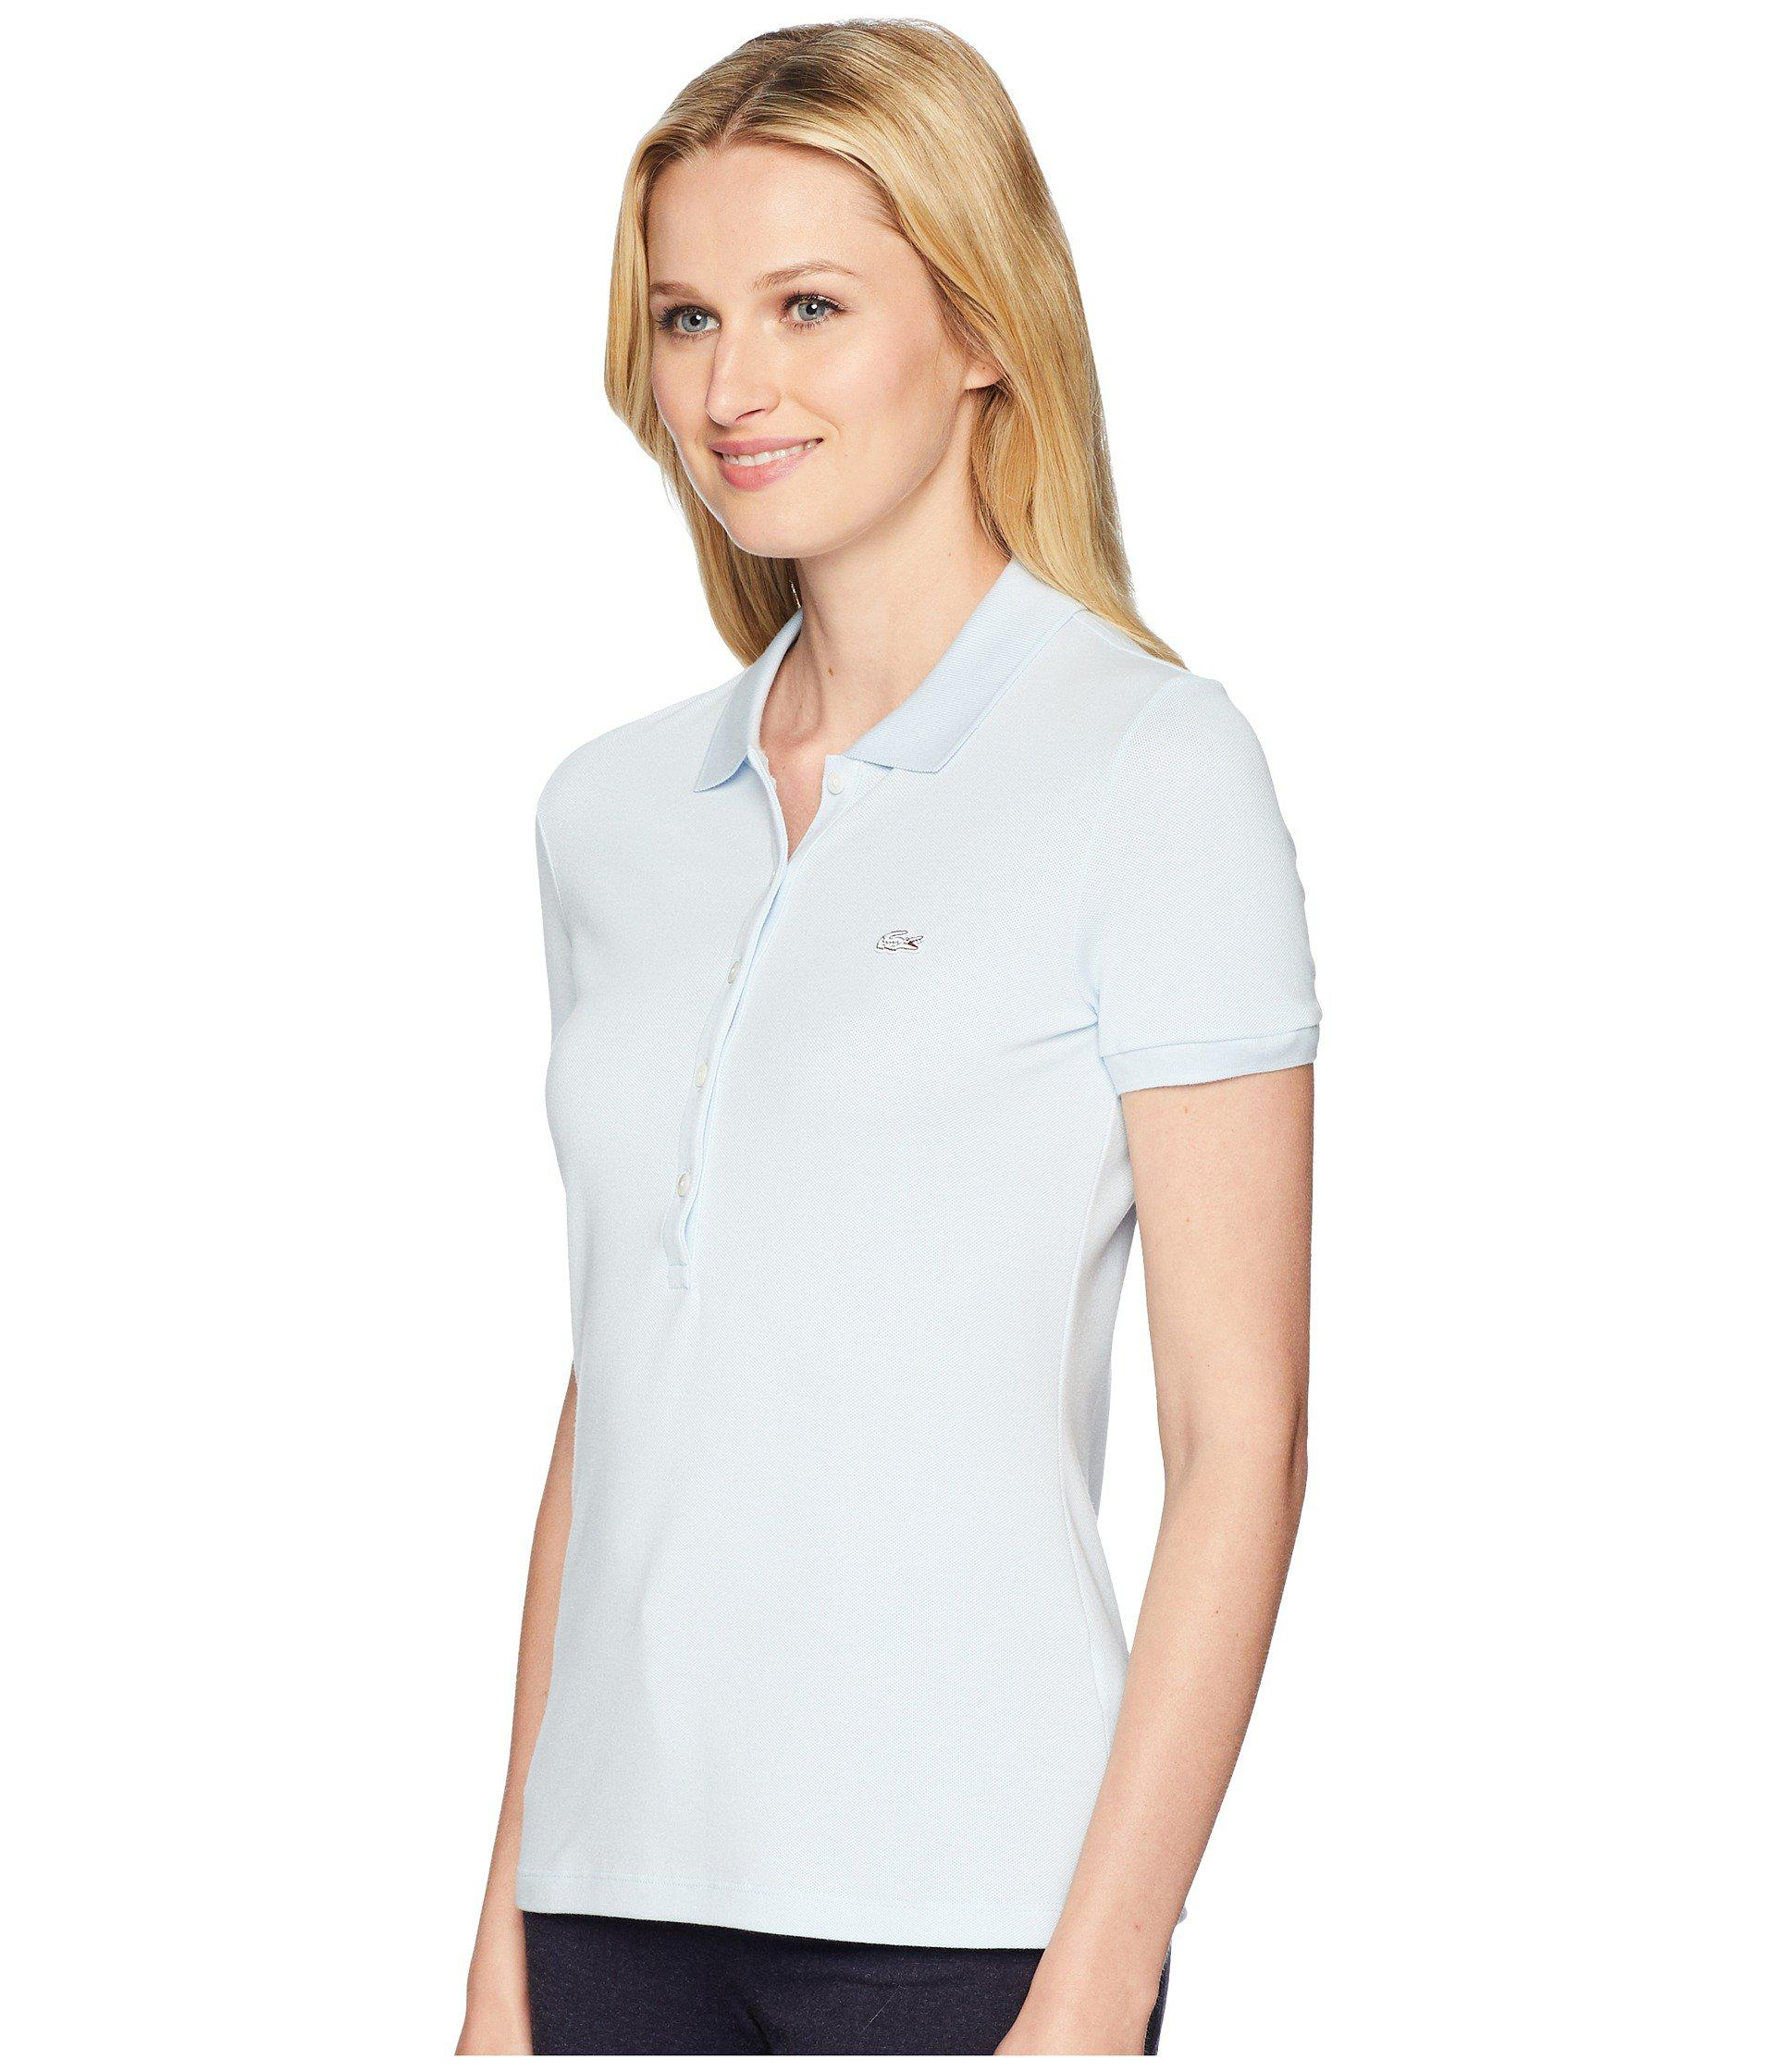 361cae96a014 Lyst - Lacoste Short Sleeve Slim Fit Stretch Pique Polo Shirt (navy Blue)  Women s Clothing in Blue - Save 30%